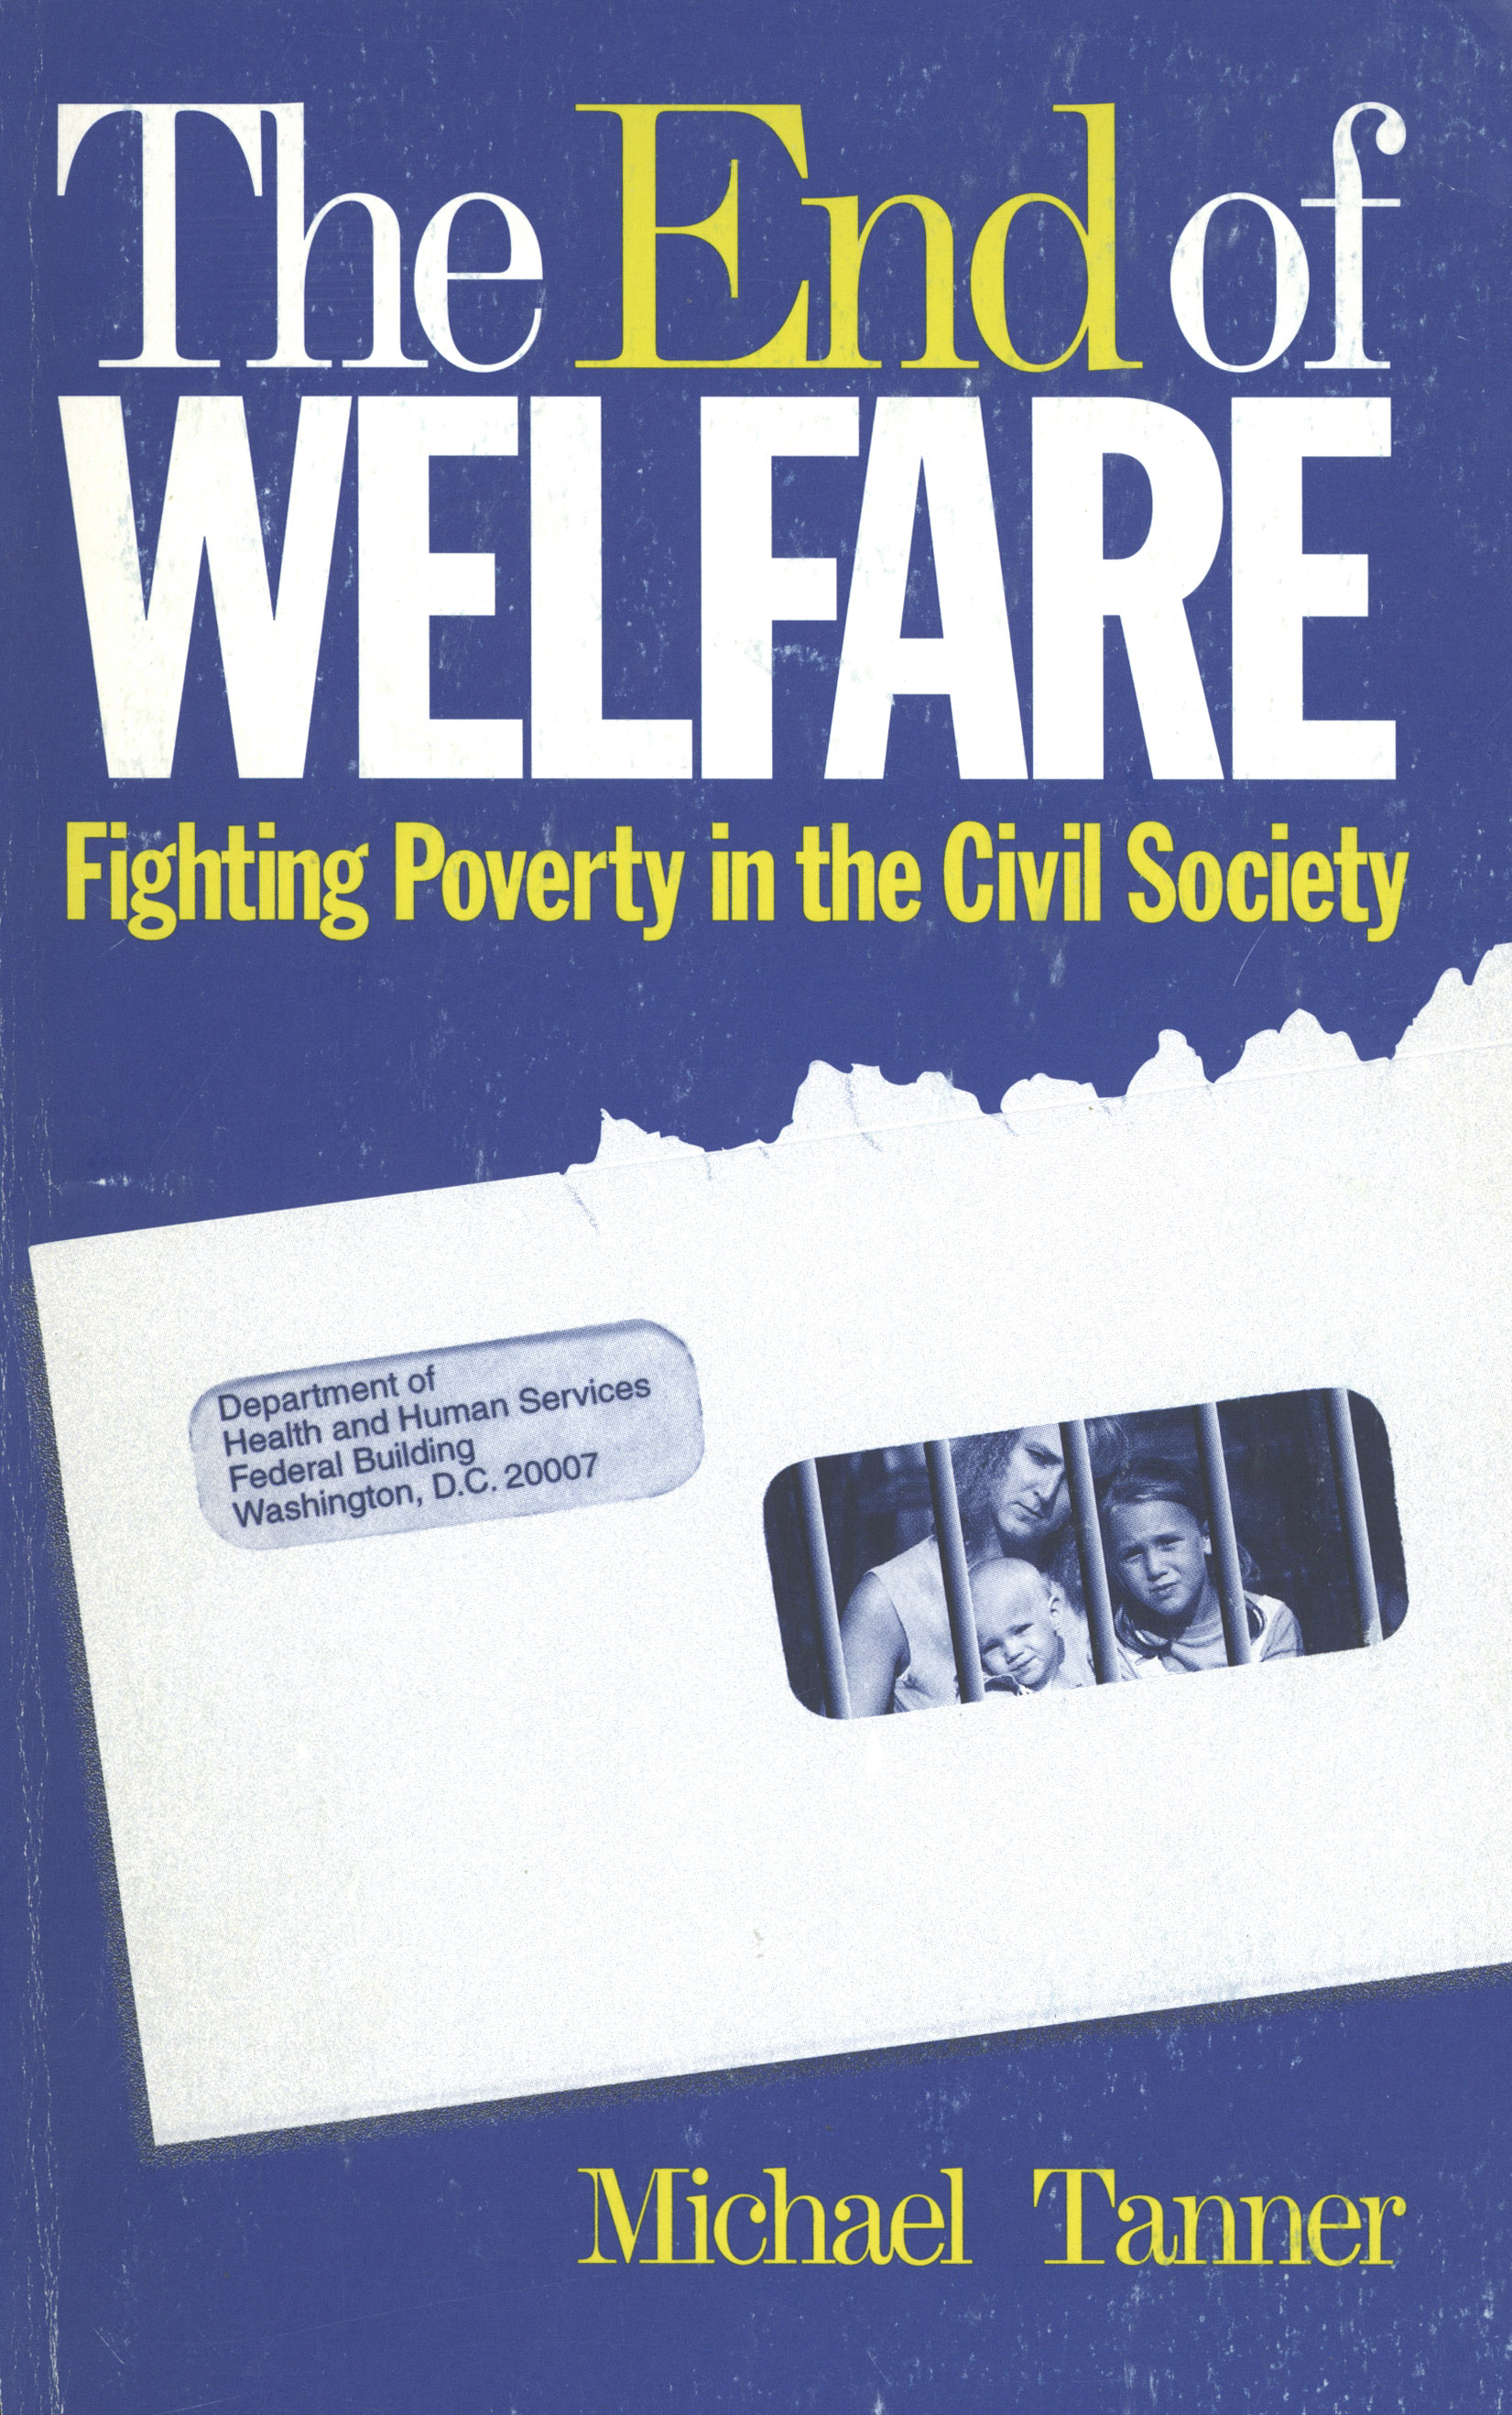 The End of Welfare